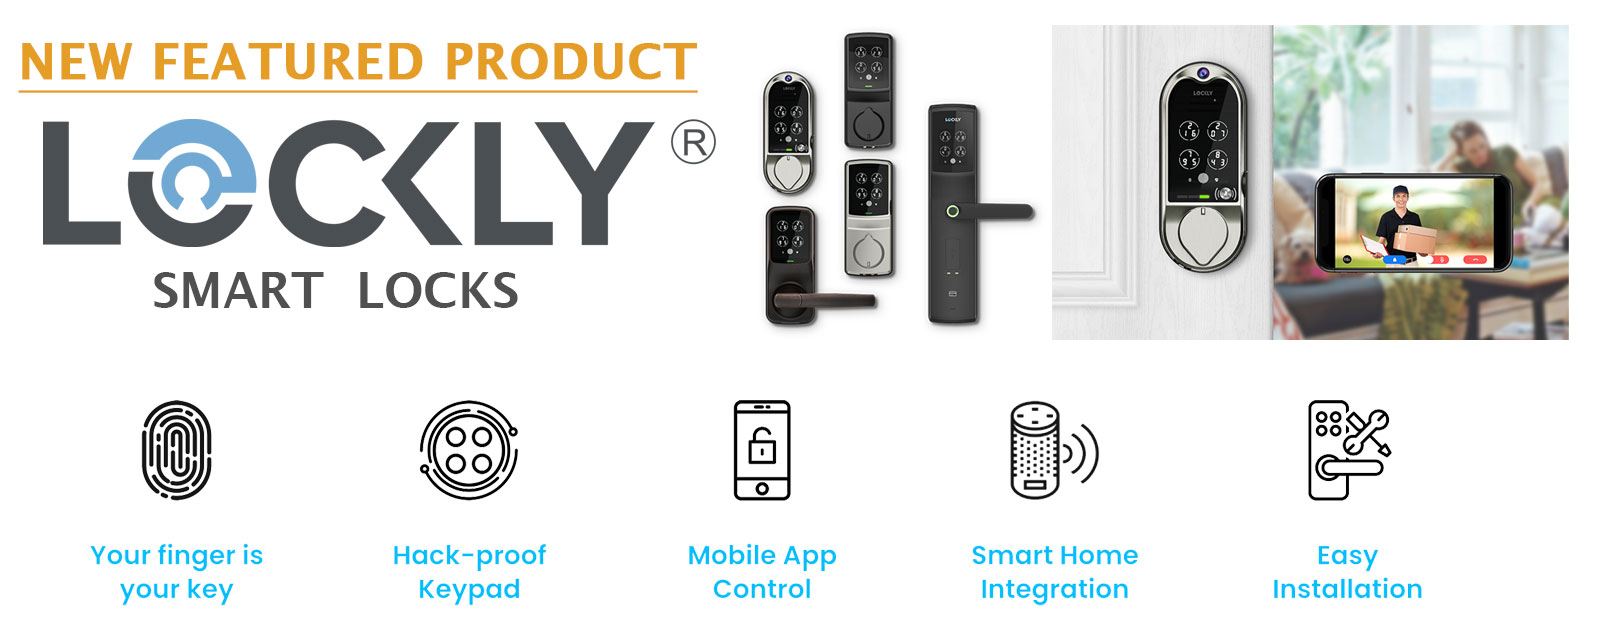 New Featured Product: Lockly Smart Locks